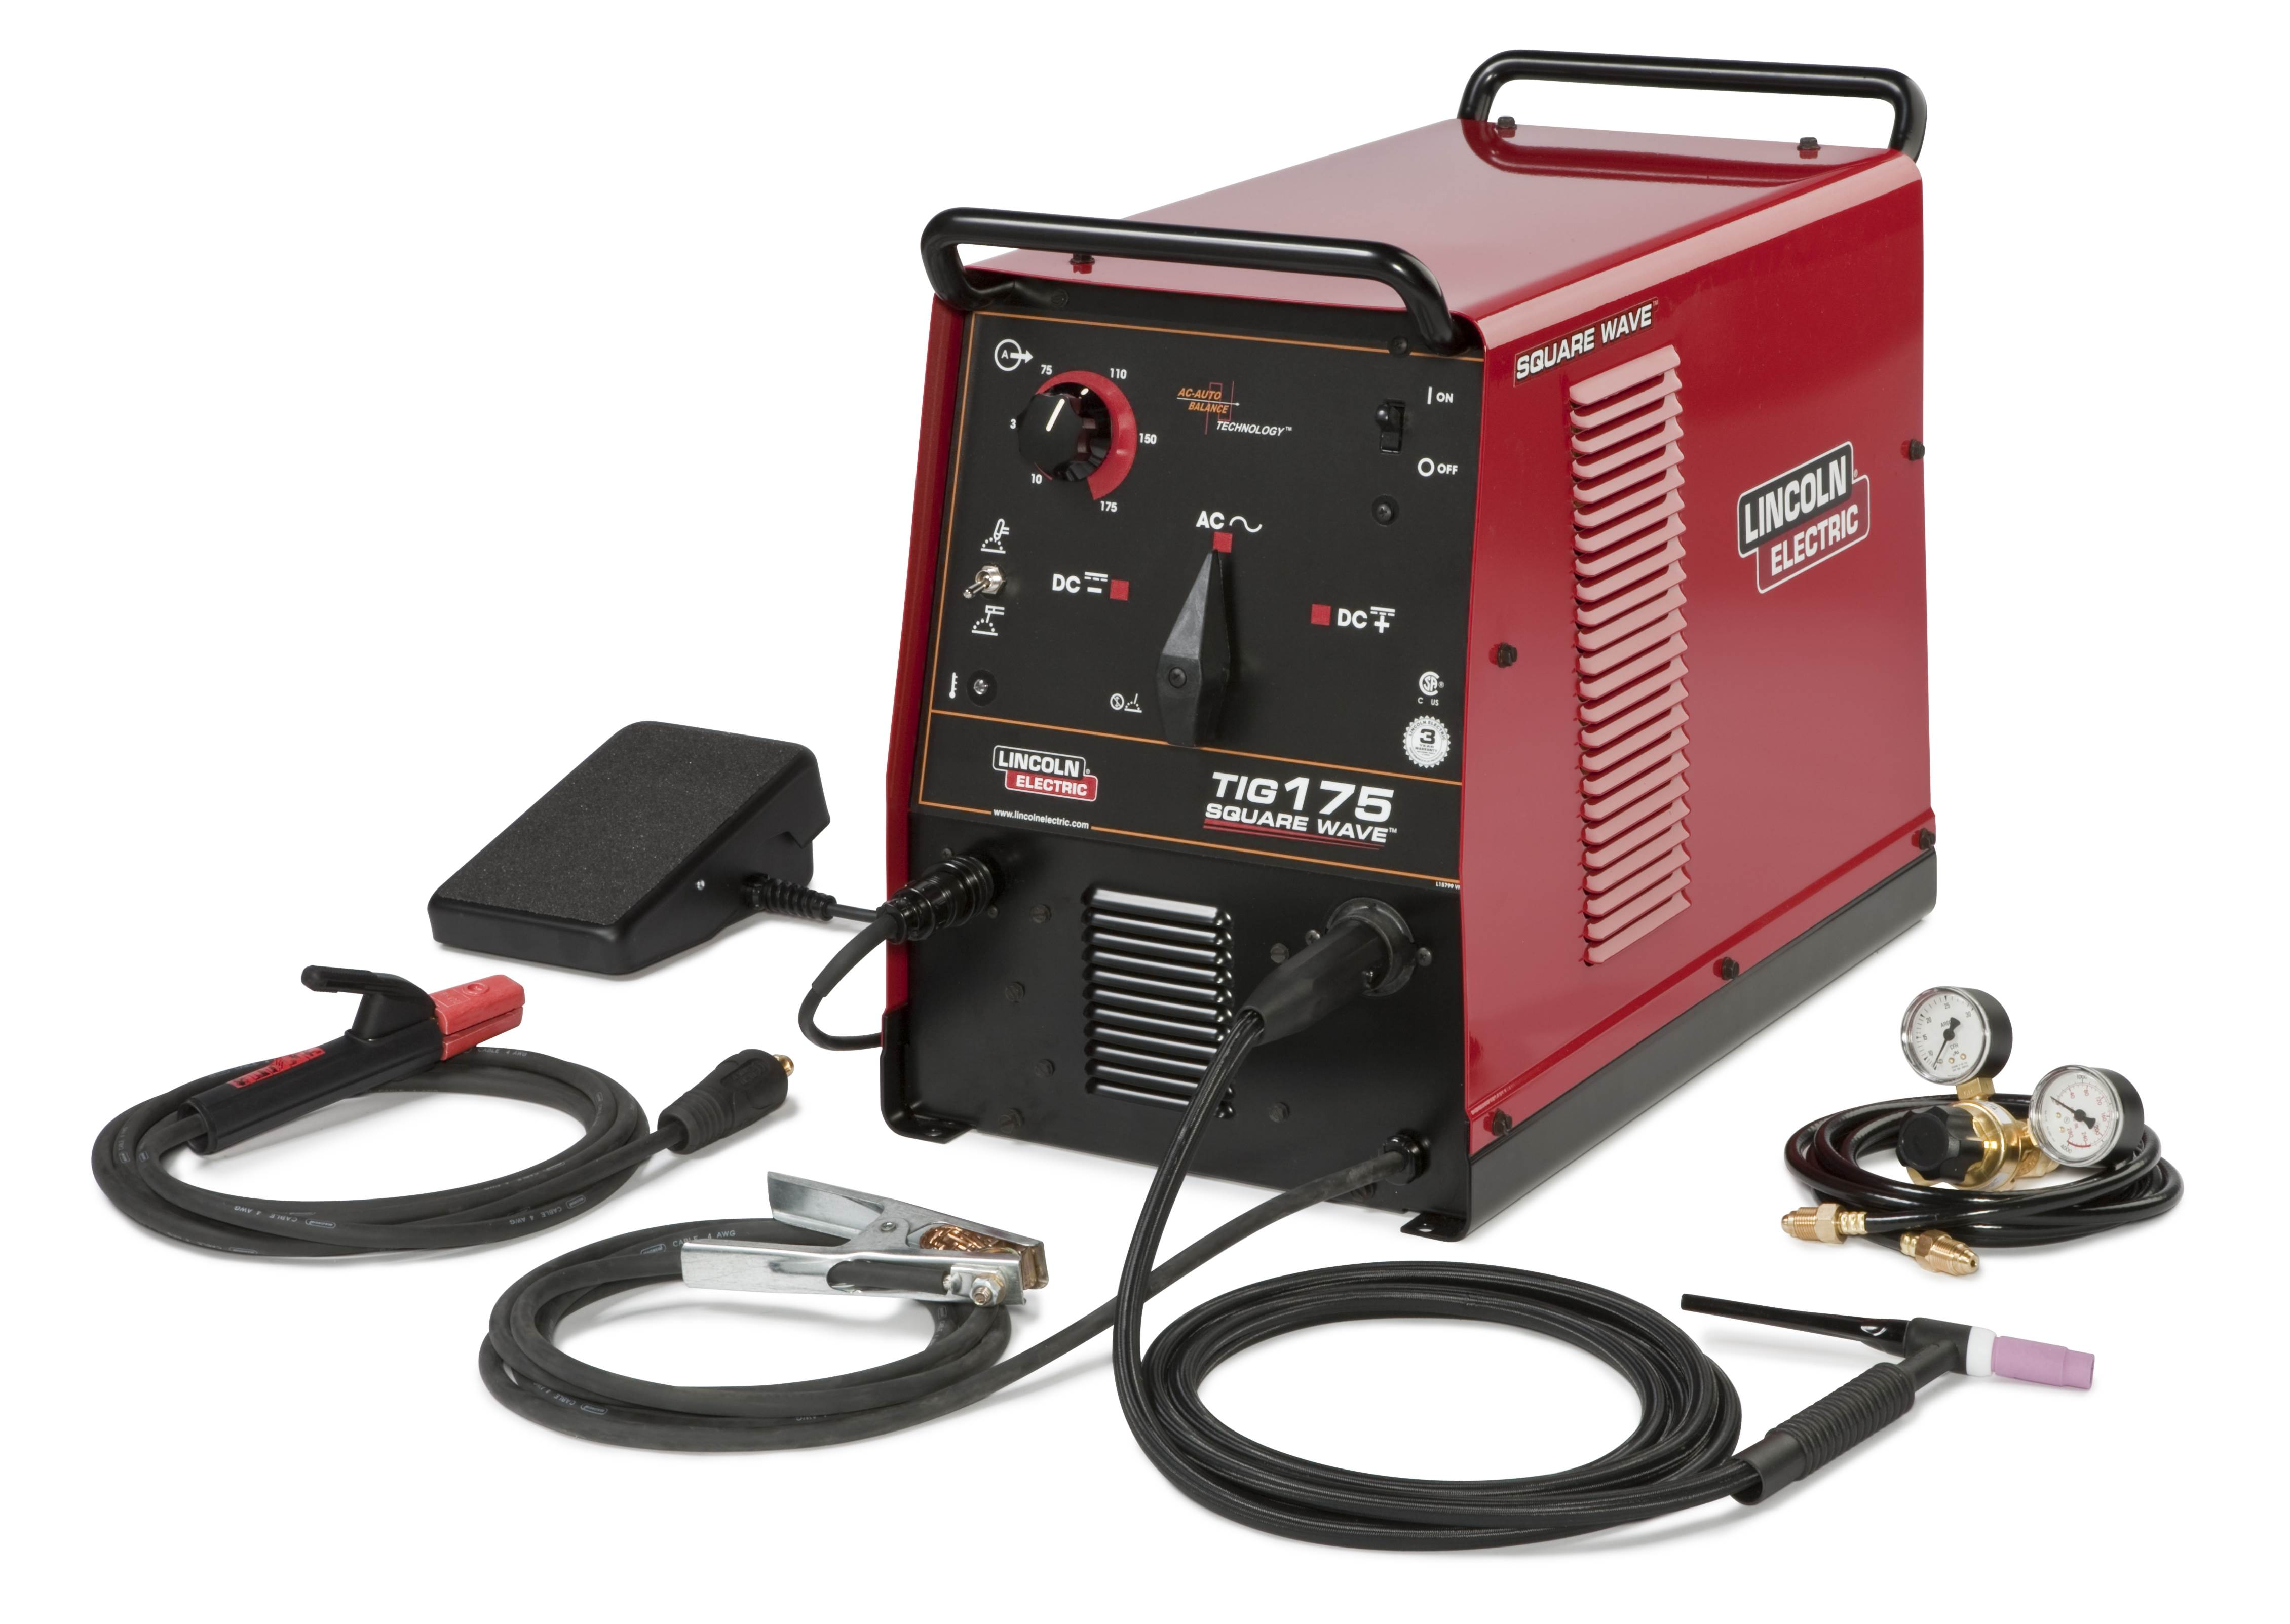 mig for orbital helix news quality introduces assurance lincoln newsroom and htm welding releases electric apex welder